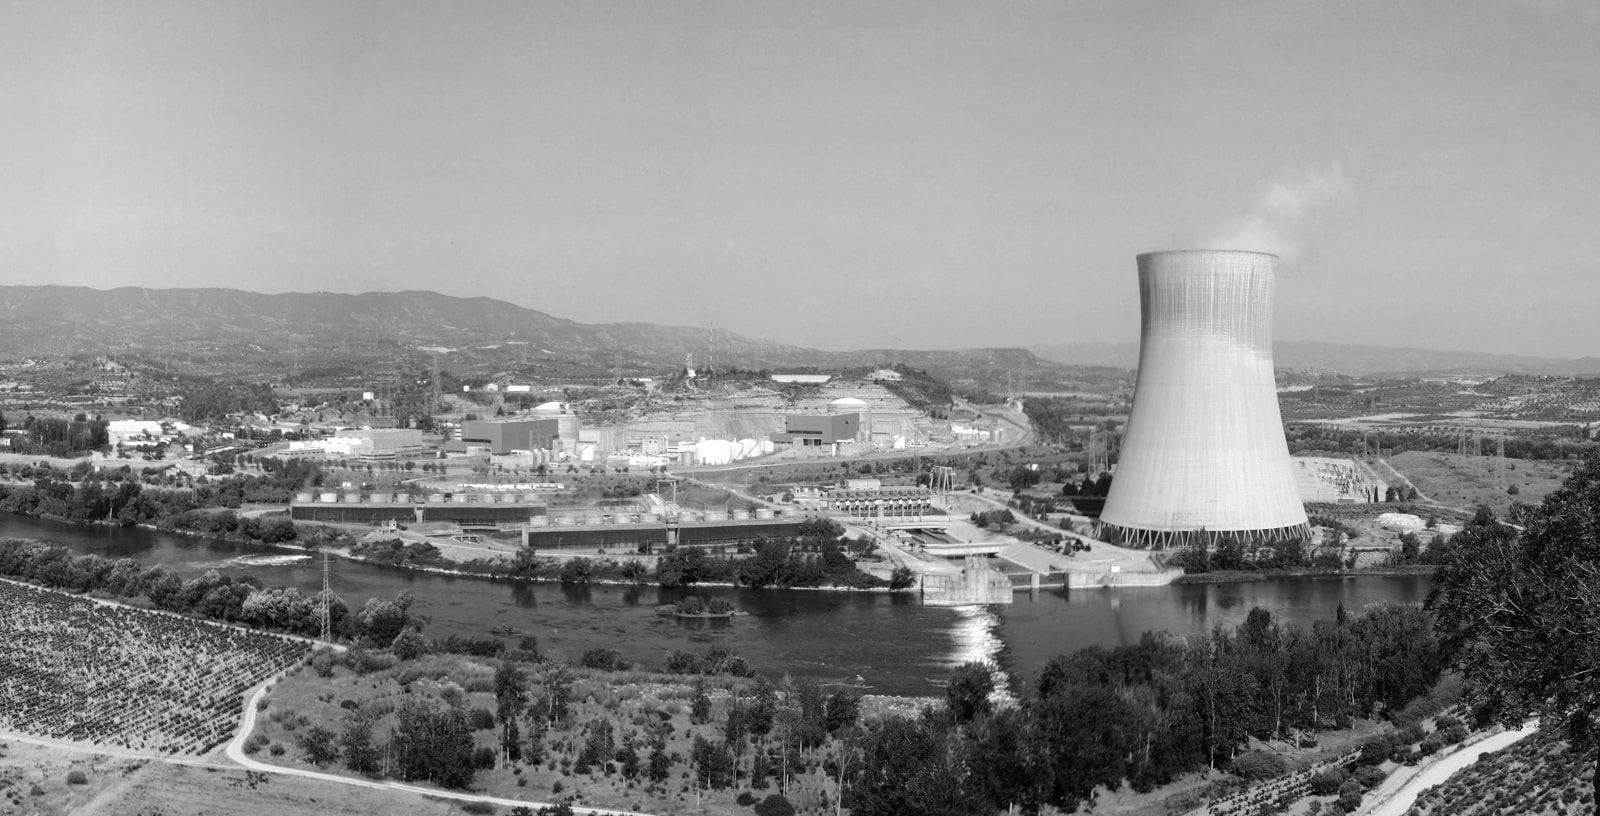 Idom_Nuclear_Services_ANAV_Asco_NPP_technical_assistance_and_supervision_ANAV_black_white